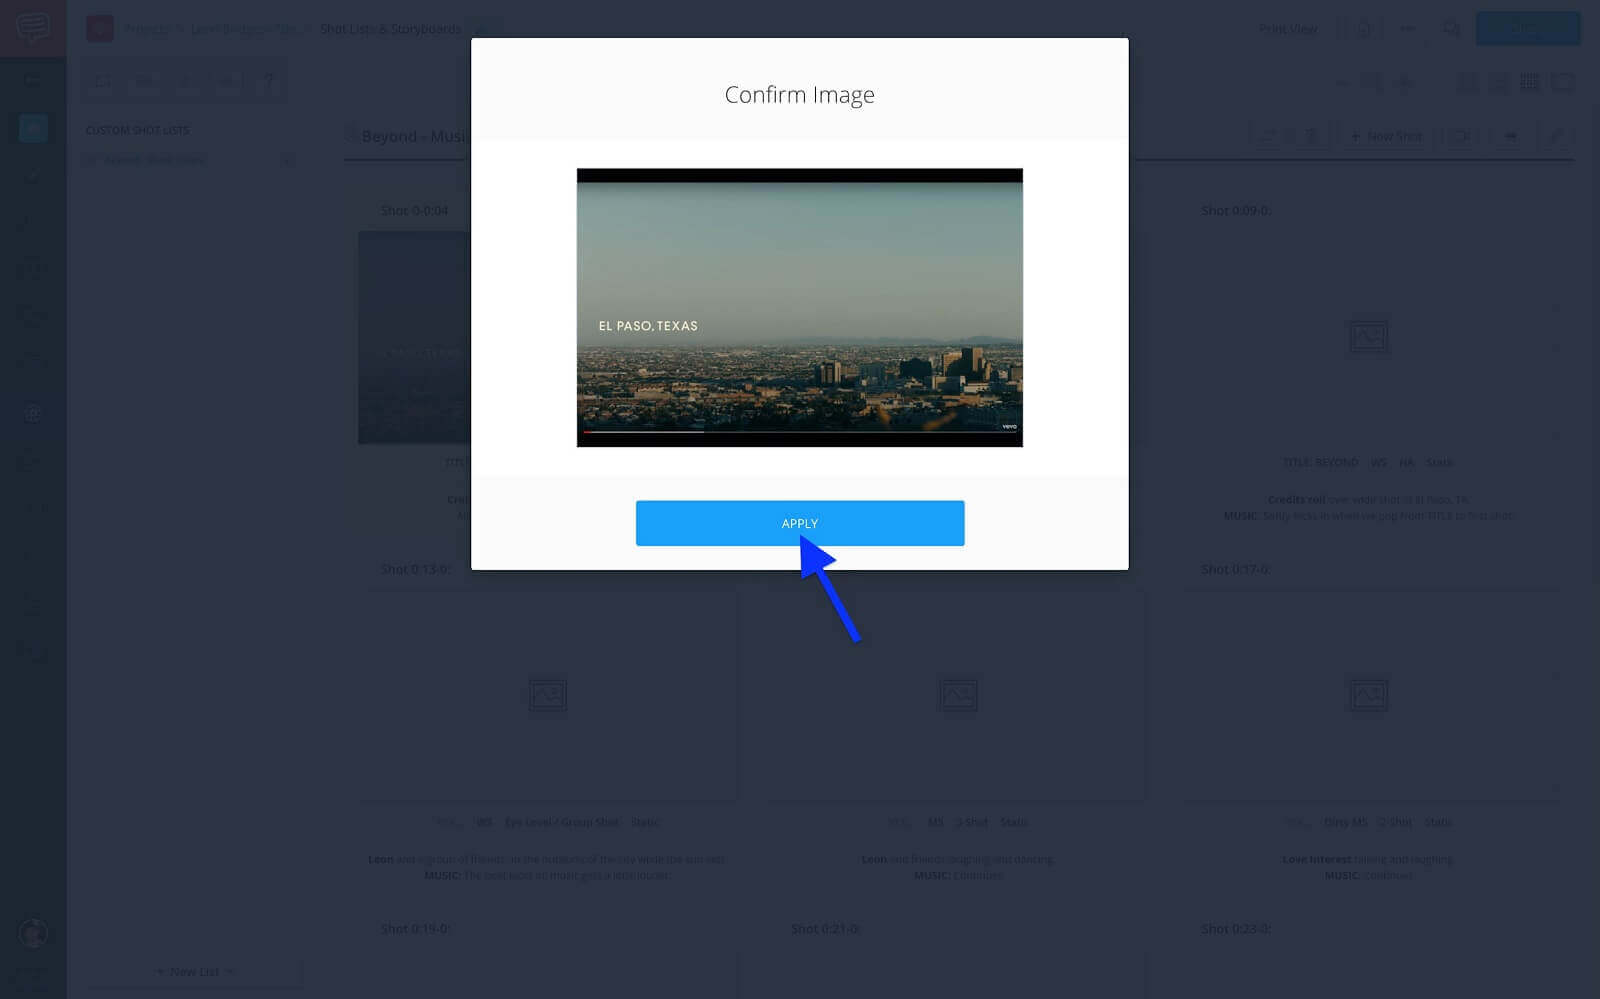 Confirm Imge - Click Apply